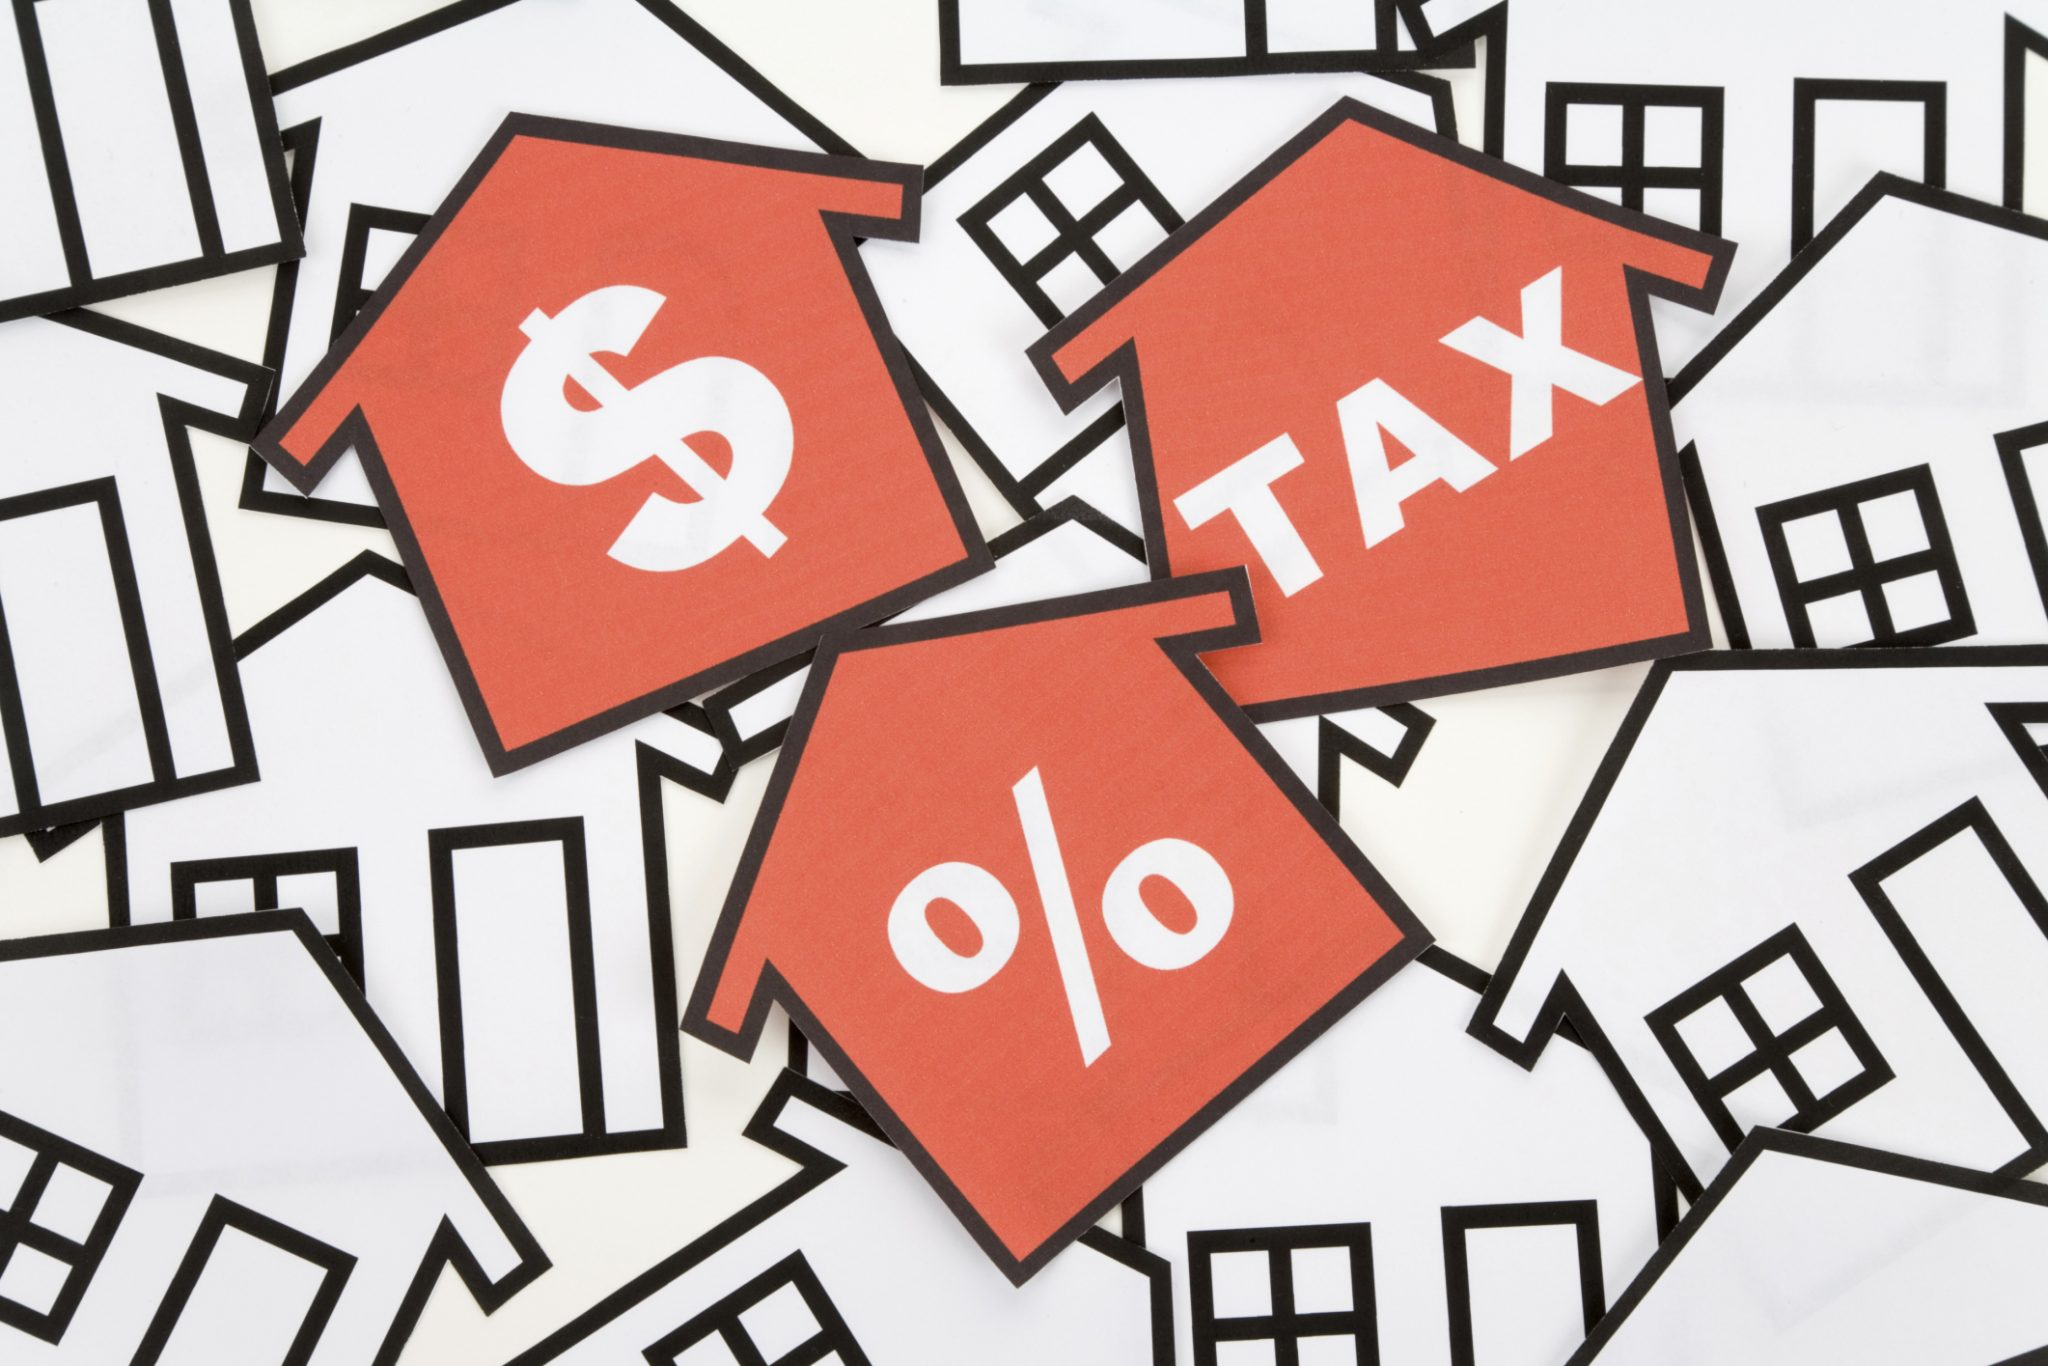 Abbotsford Property Taxes Highest in Lower Mainland